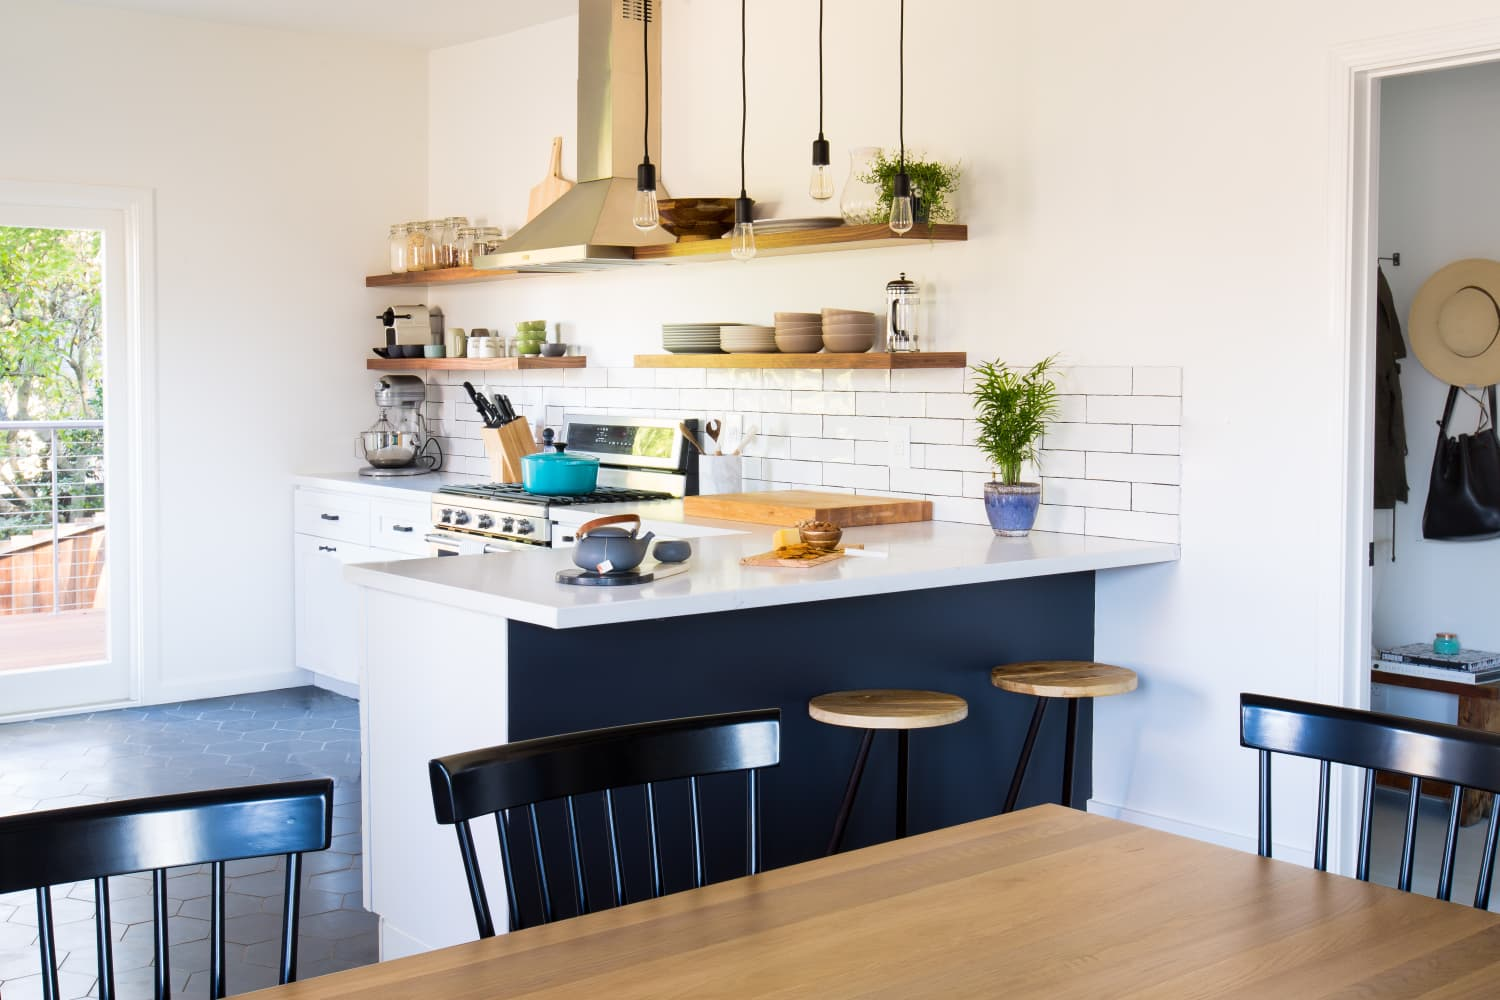 45 Ways to Make Your Home the Cleanest It's Ever Been